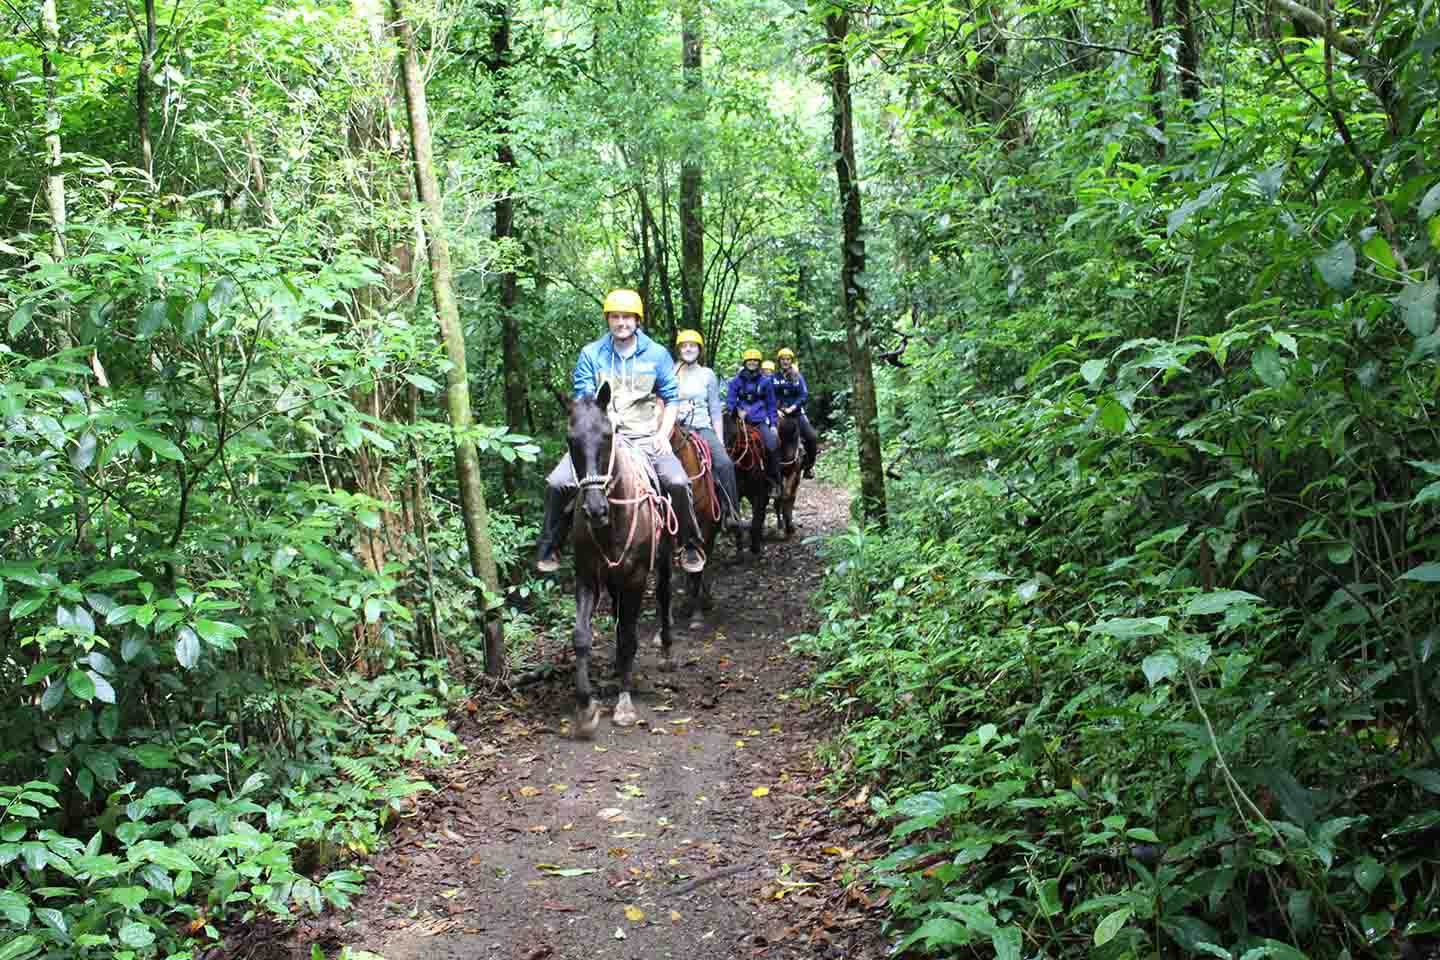 Monteverde Costa Rica guided Horseback riding tour riding on forest trail through rainforest on narrow path